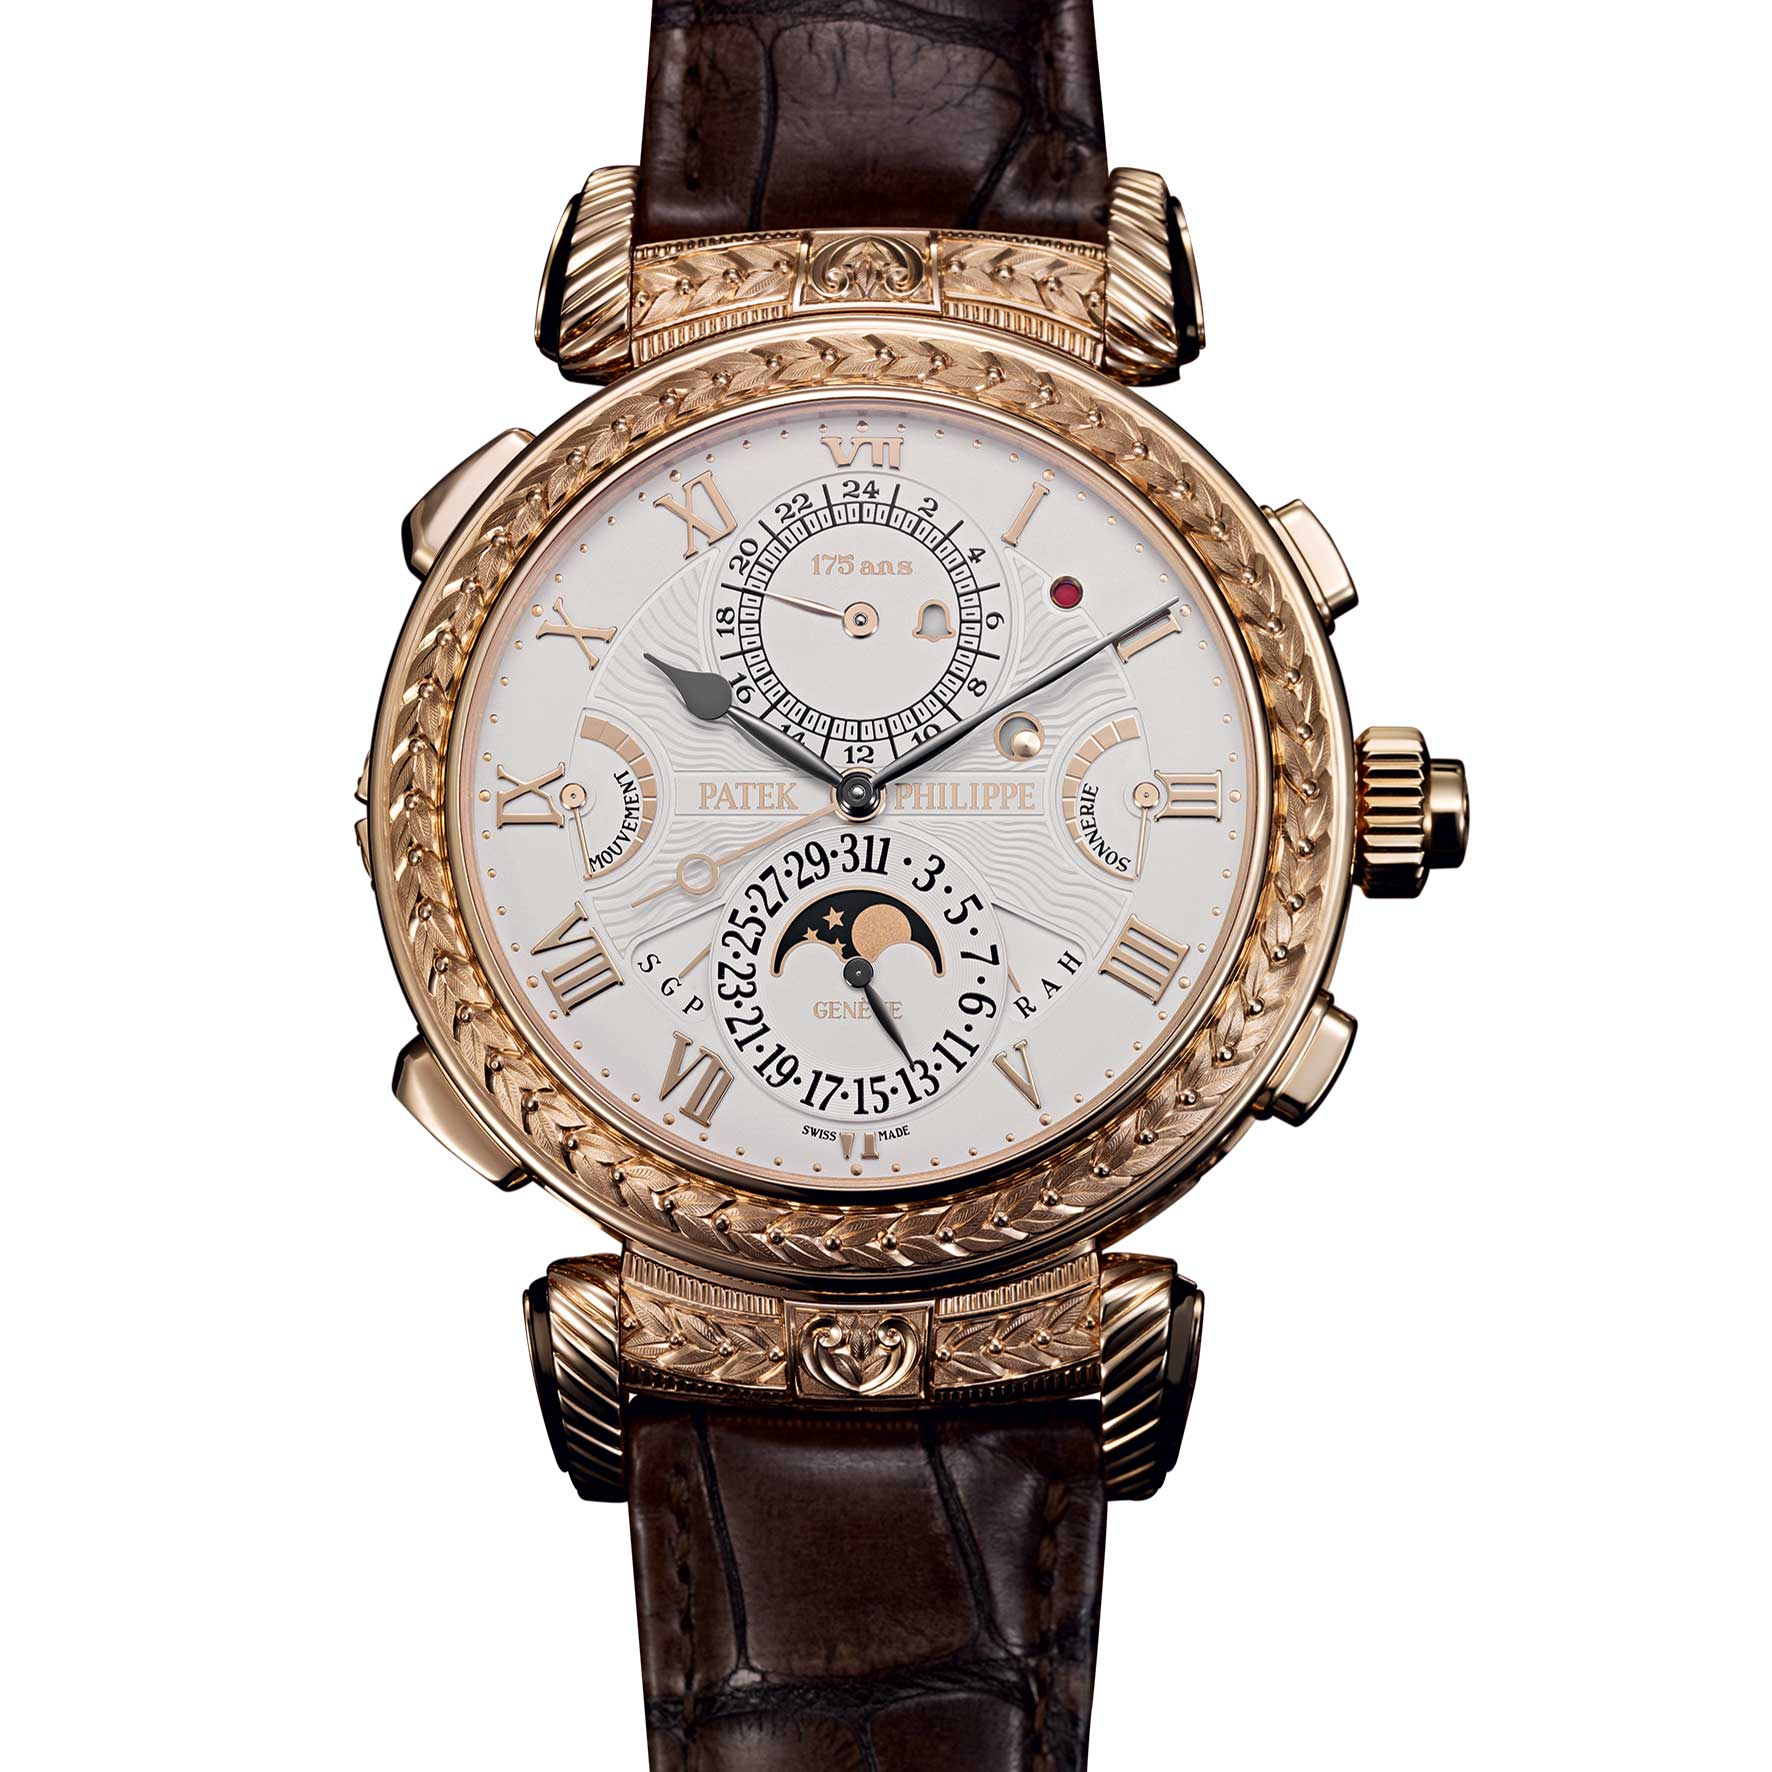 The Time Side: The Patek Philippe Grandmaster Chime Ref. 5175 with the unique hand-engraved case was the star among the commemorative watches presented on the occasion of the manufacture's 175th anniversary in 2014; the reference featured a reversible case decorated with the manufacture's typical hobnail pattern, this opus showcases 20 complications, including five chiming modes, two of which are patented acoustic world debuts